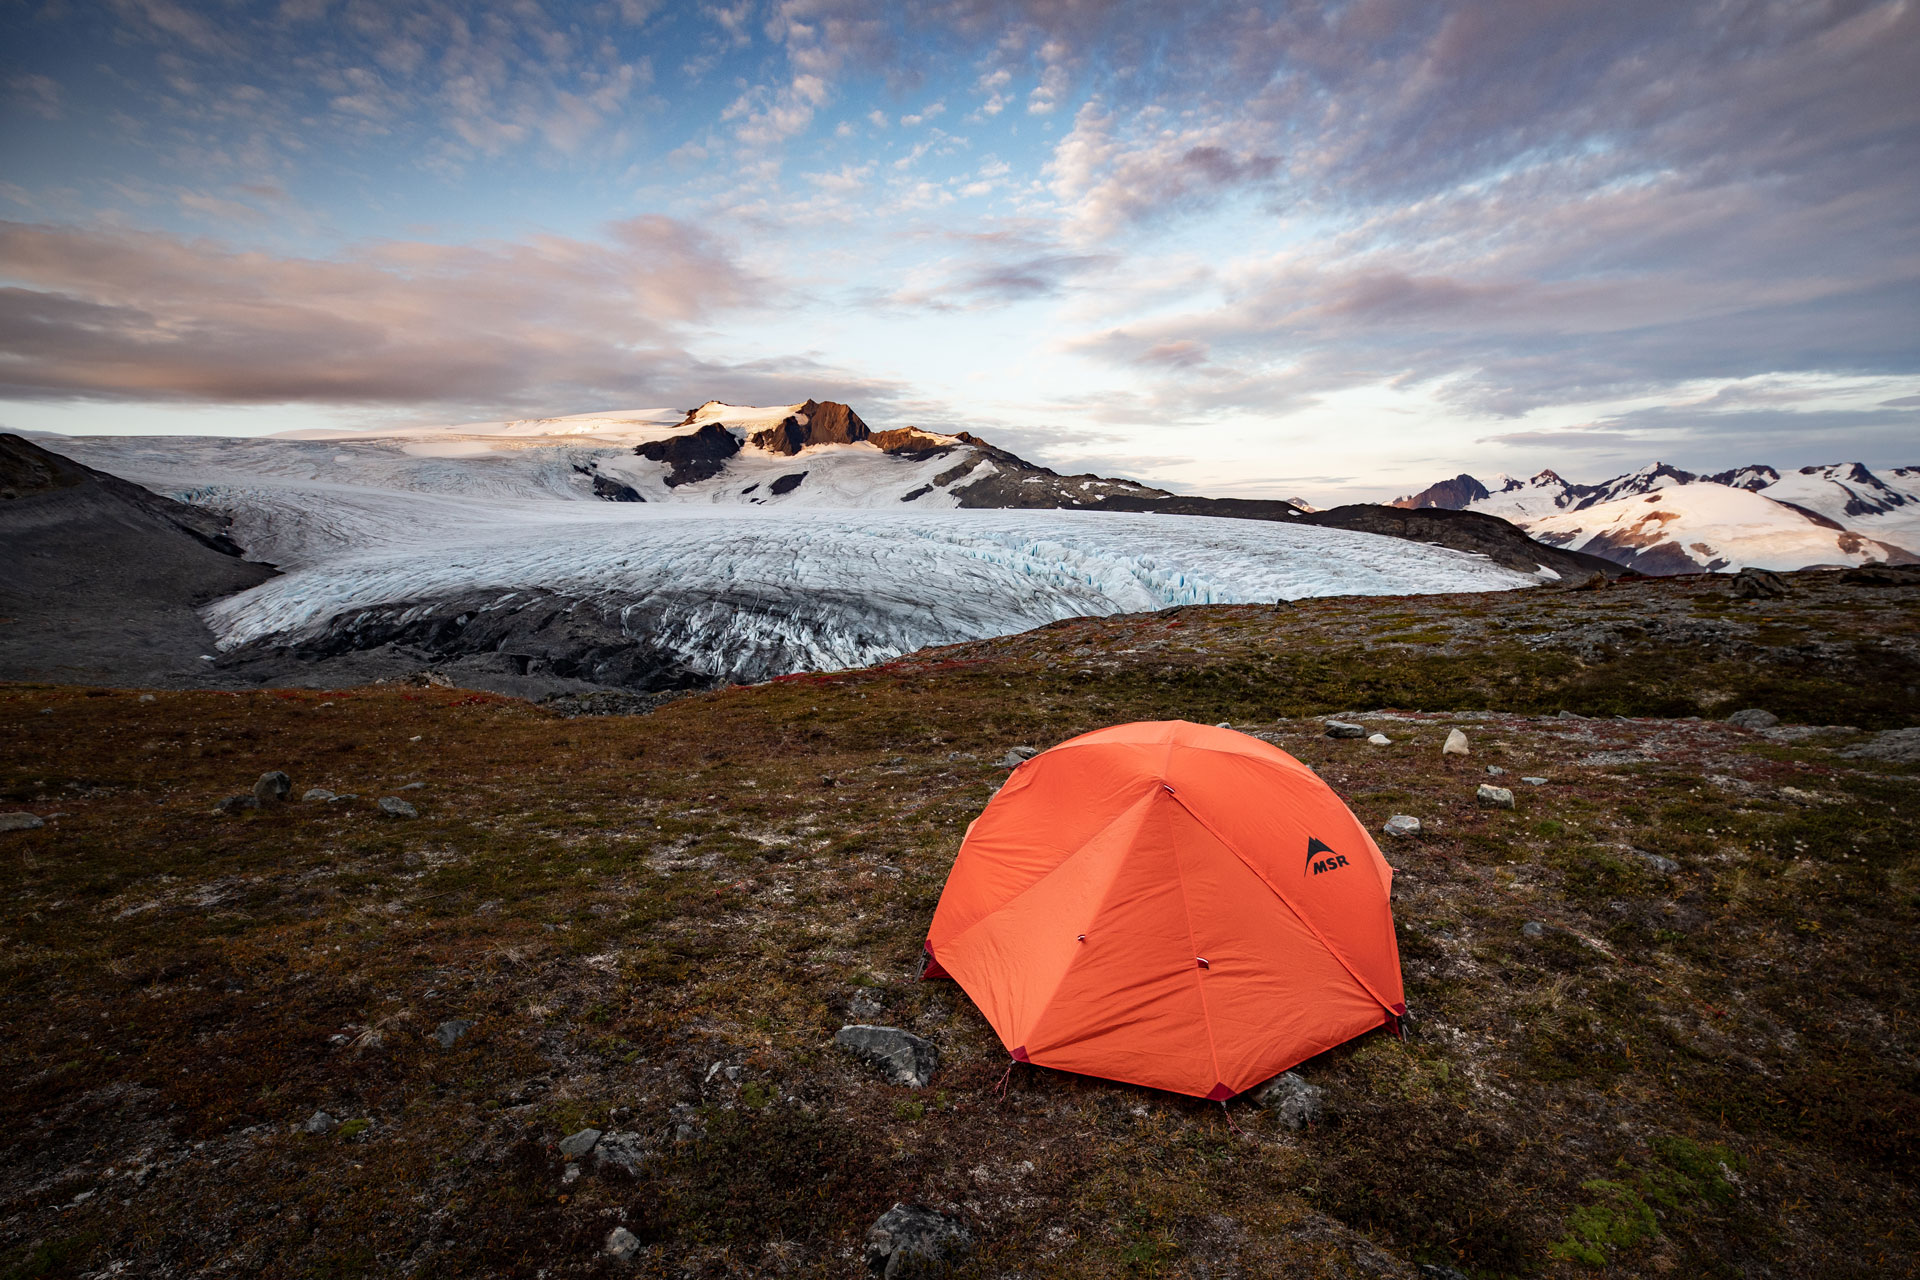 Joe-Yelverton-Icefields-to-Oceans-MSR-blog-tent